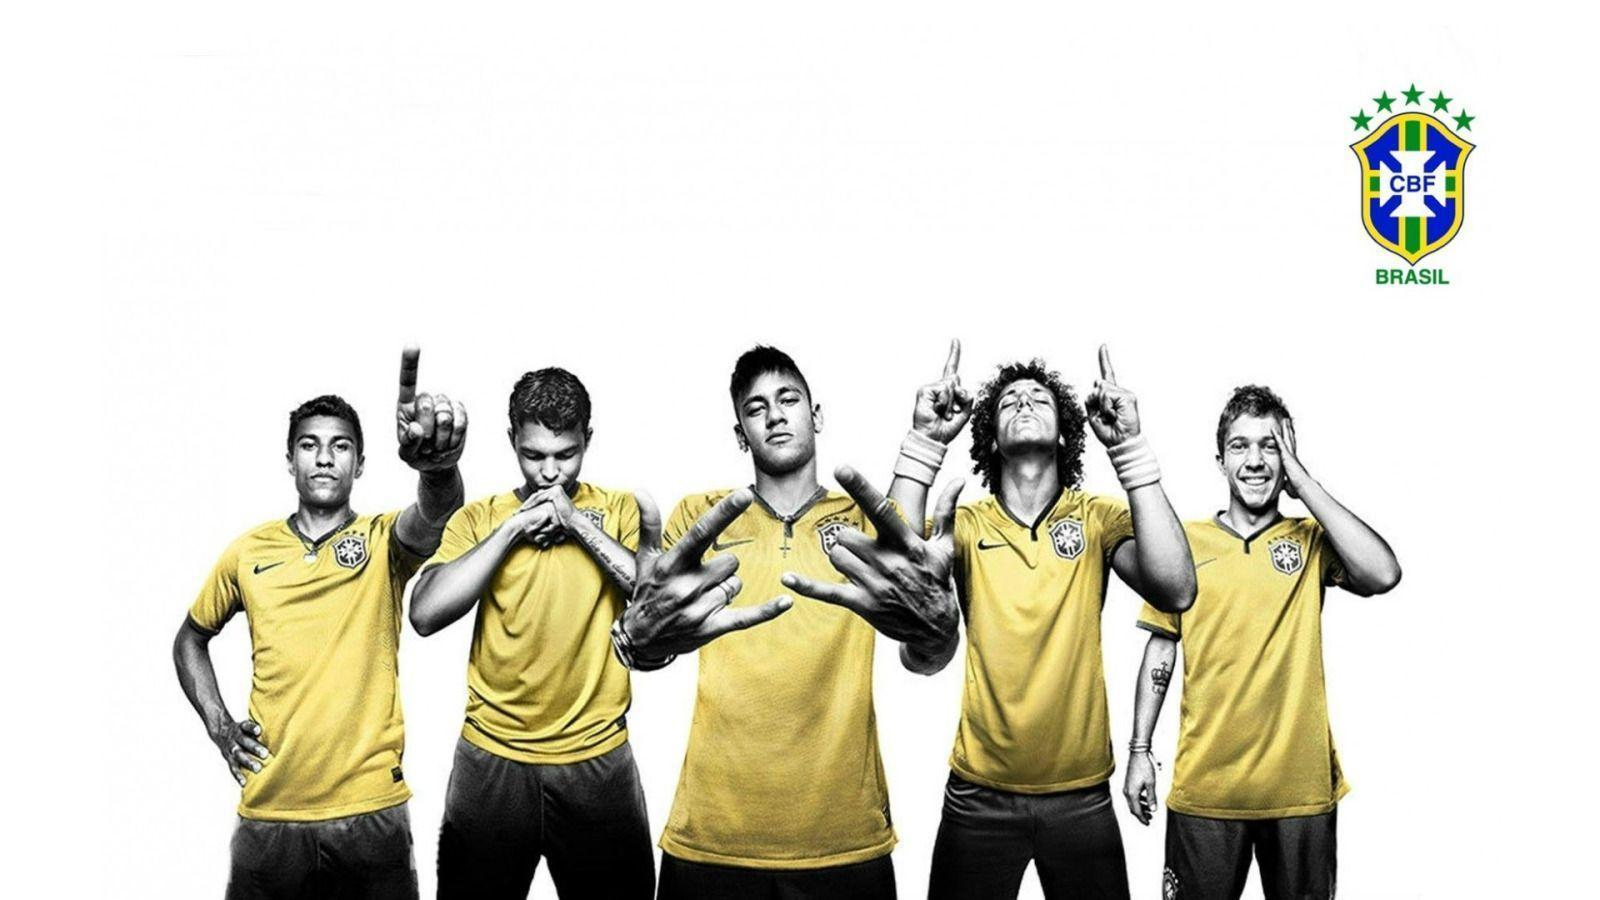 CBF, Brazil Soccer Players widescreen wallpaper | Wide-Wallpapers.NET